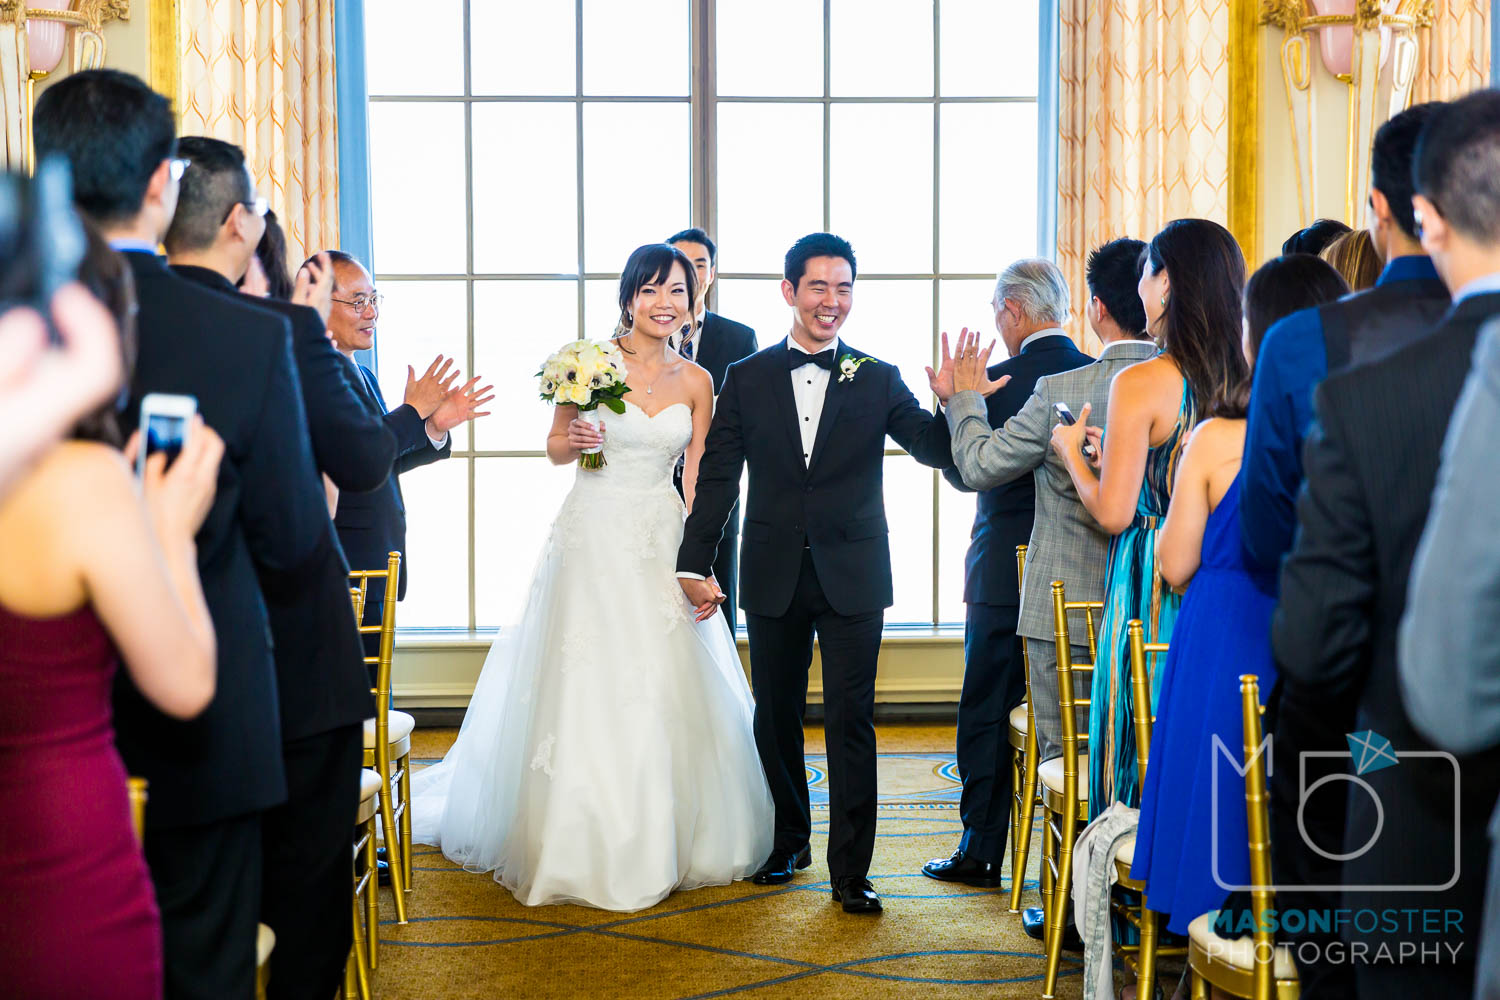 just married , wedding photography at the westin st. francis in san francisco